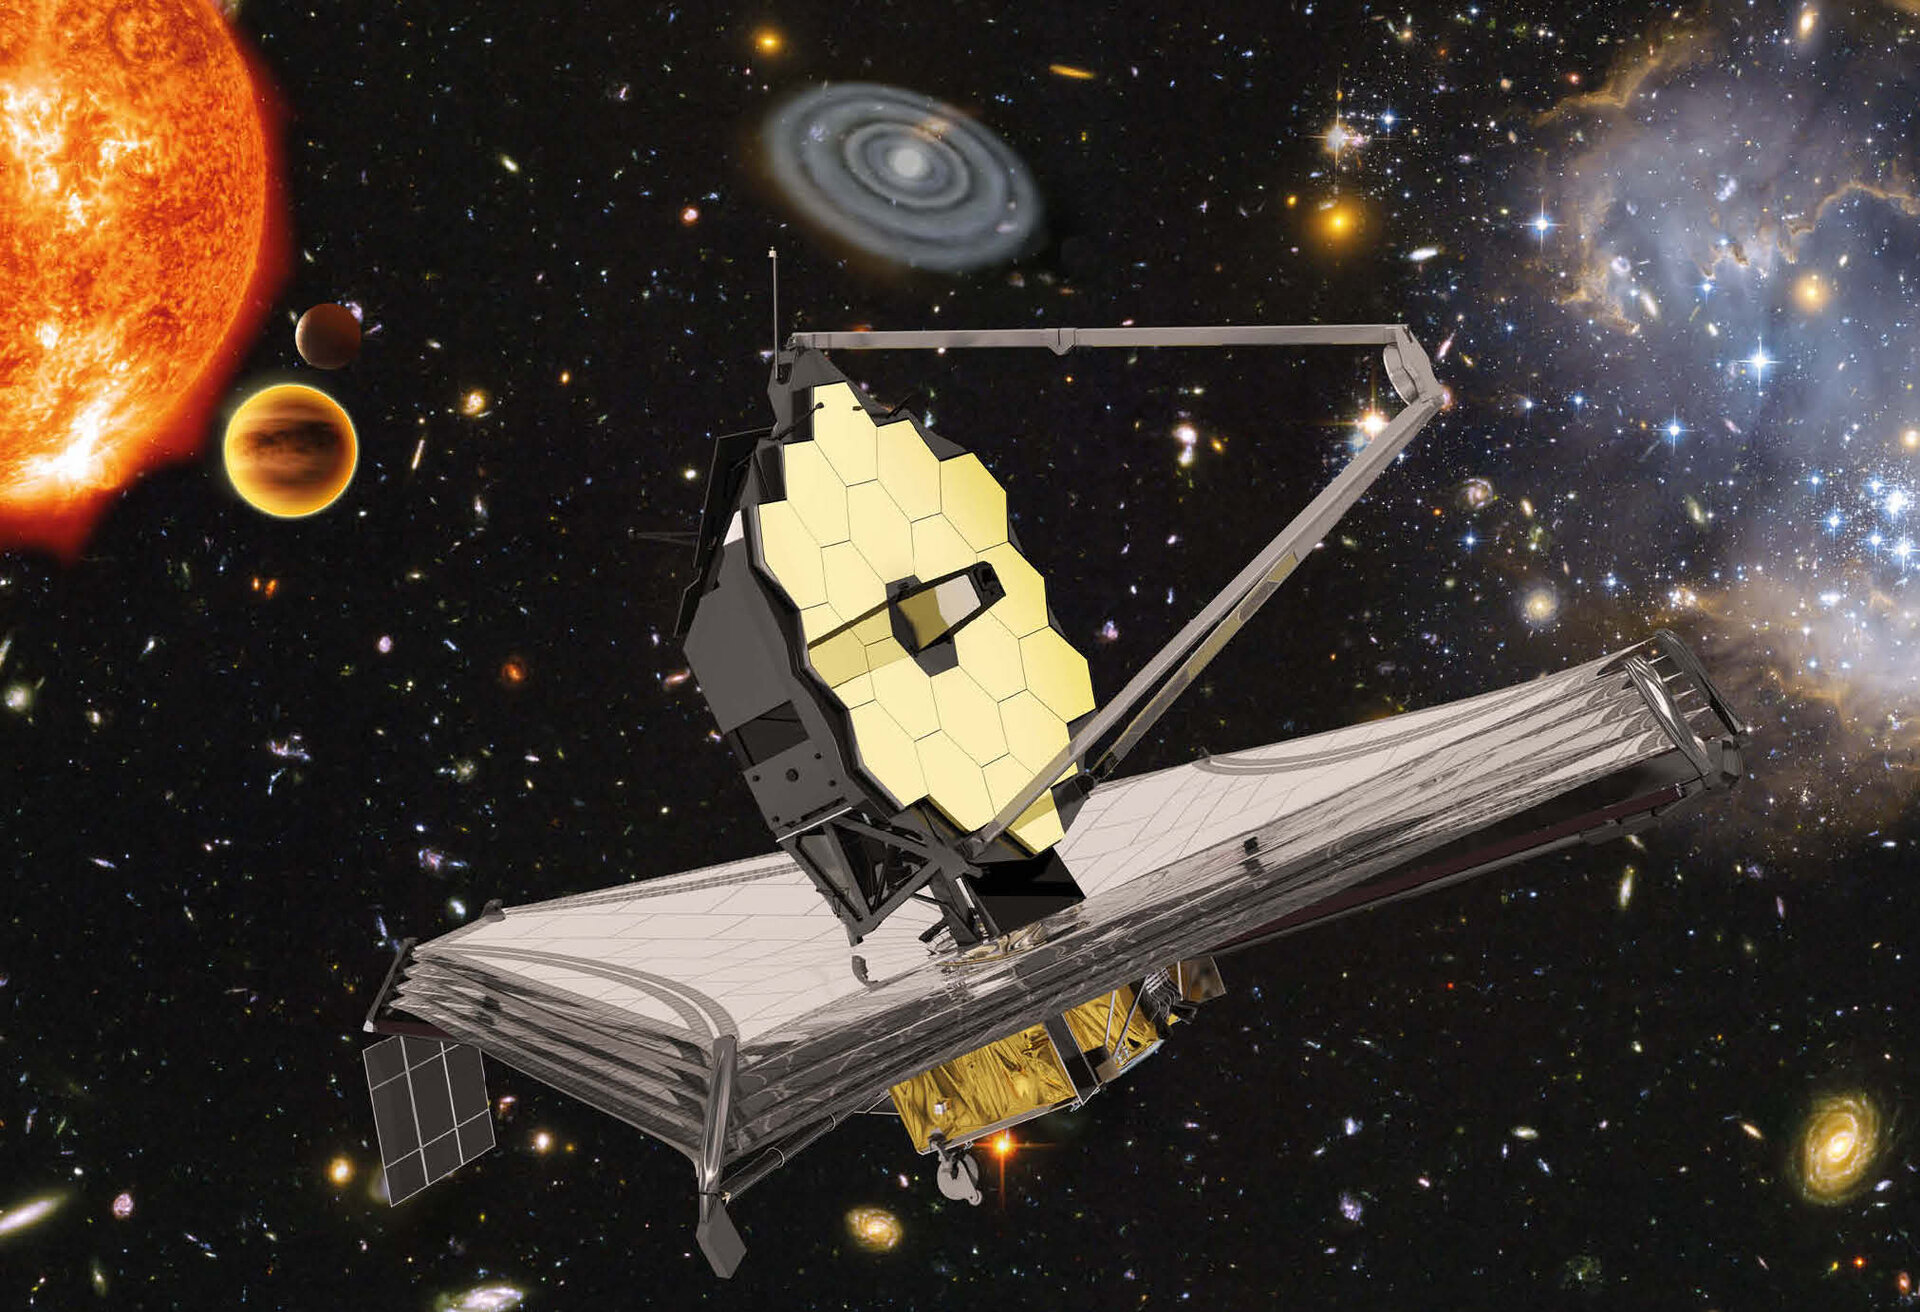 James Webb Space Telescope: An Overview